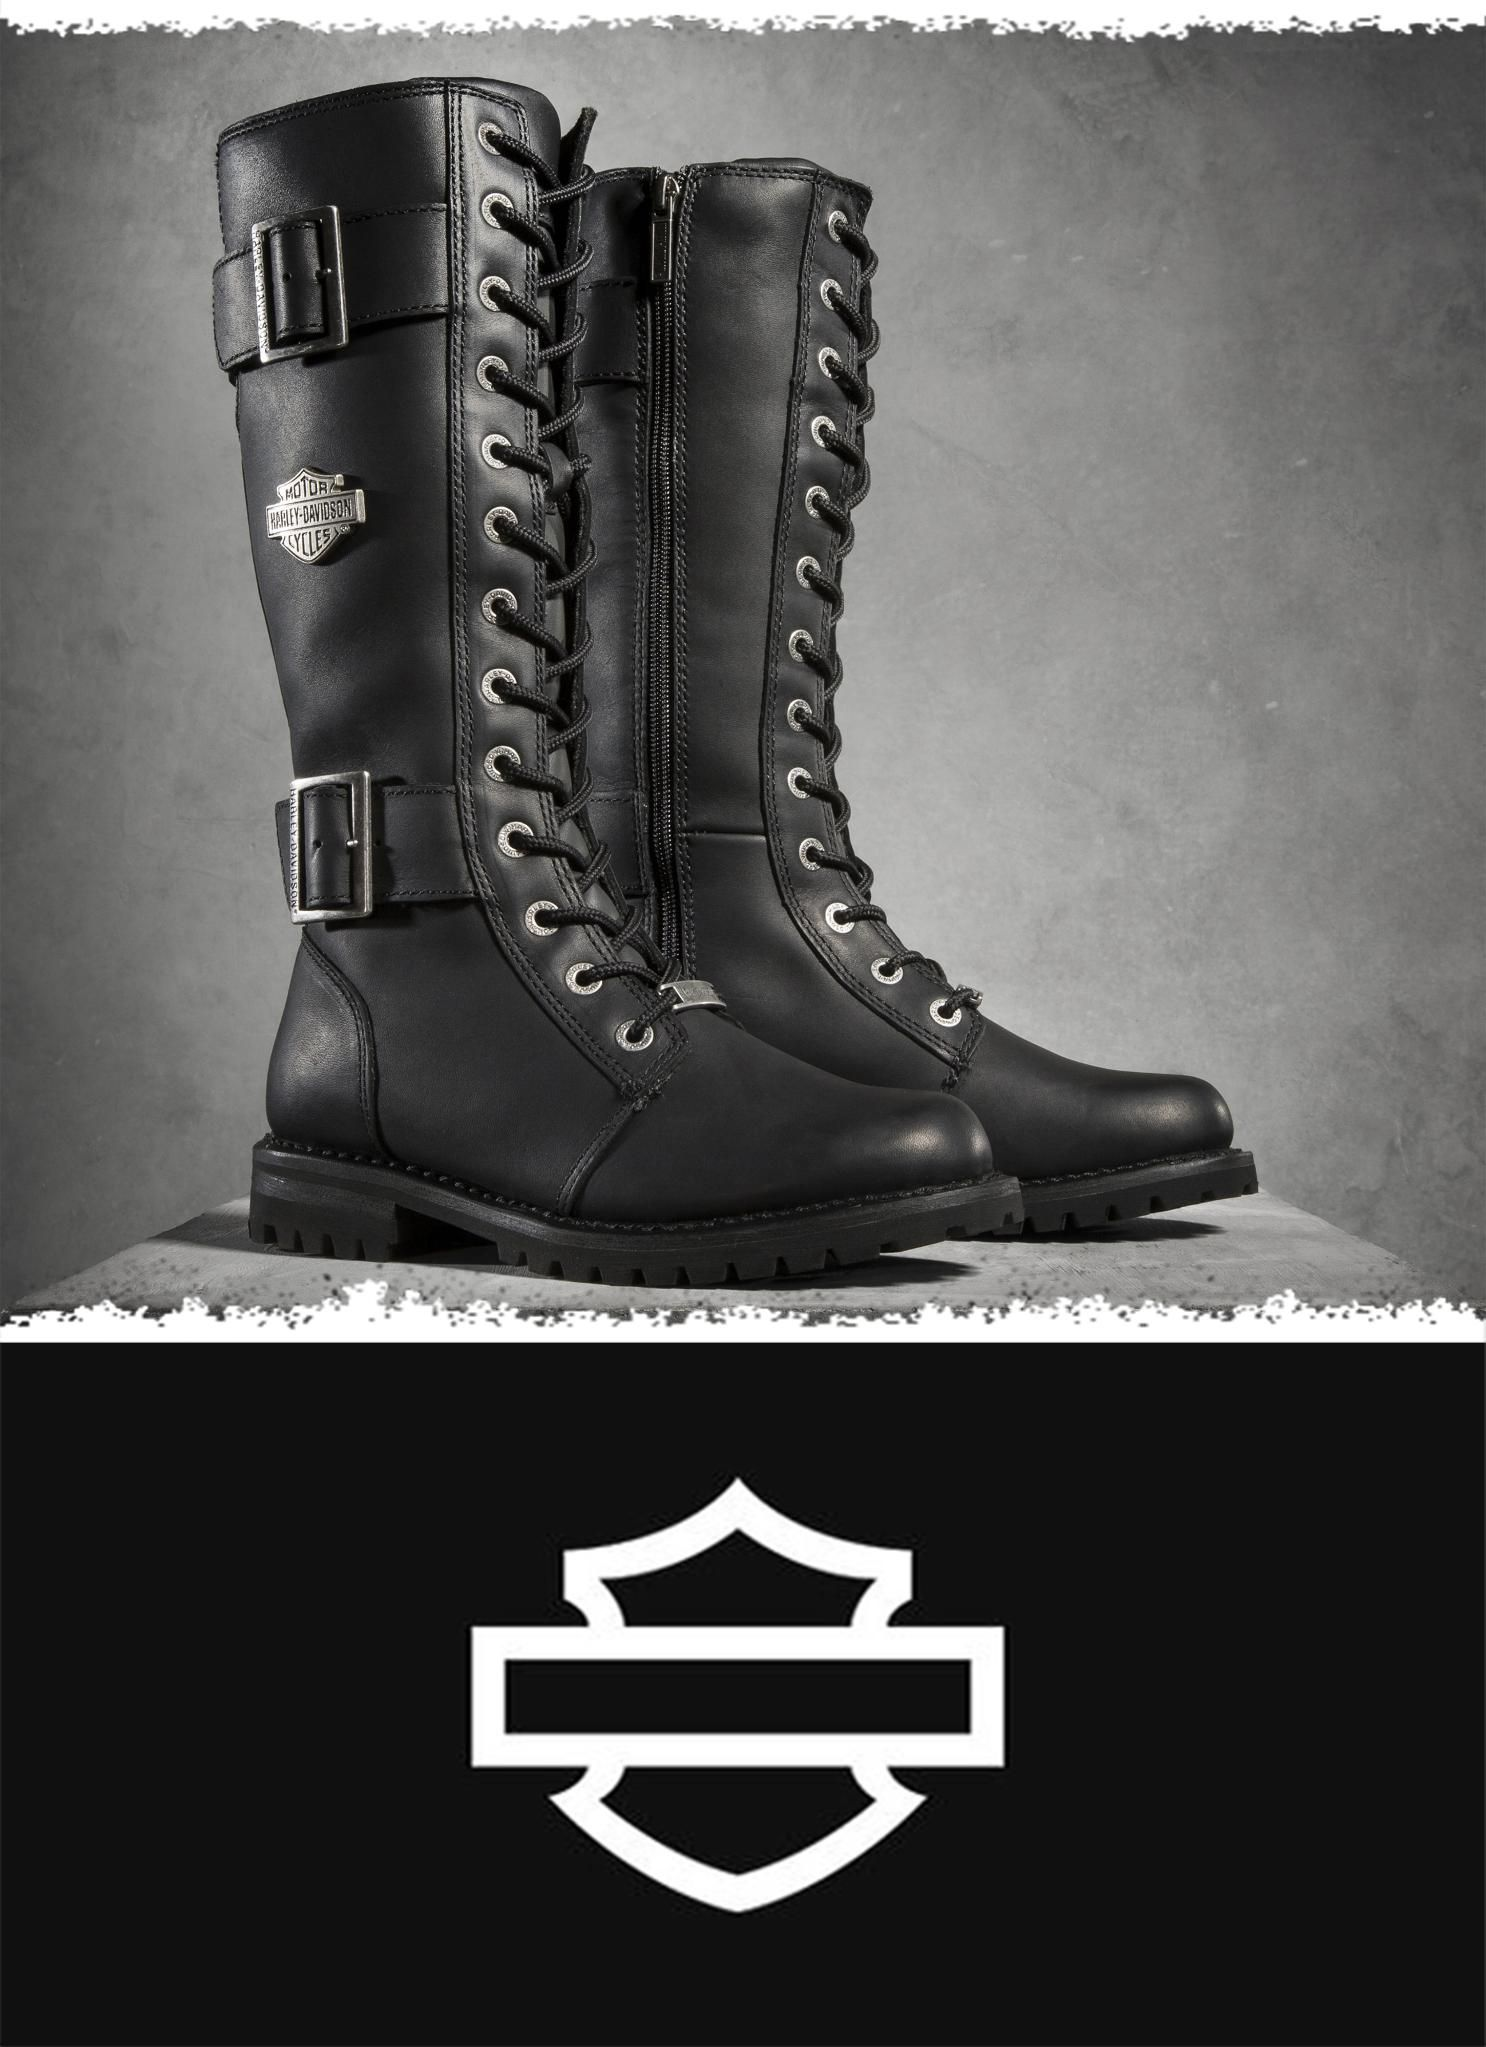 Boots, Womens harley davidson boots